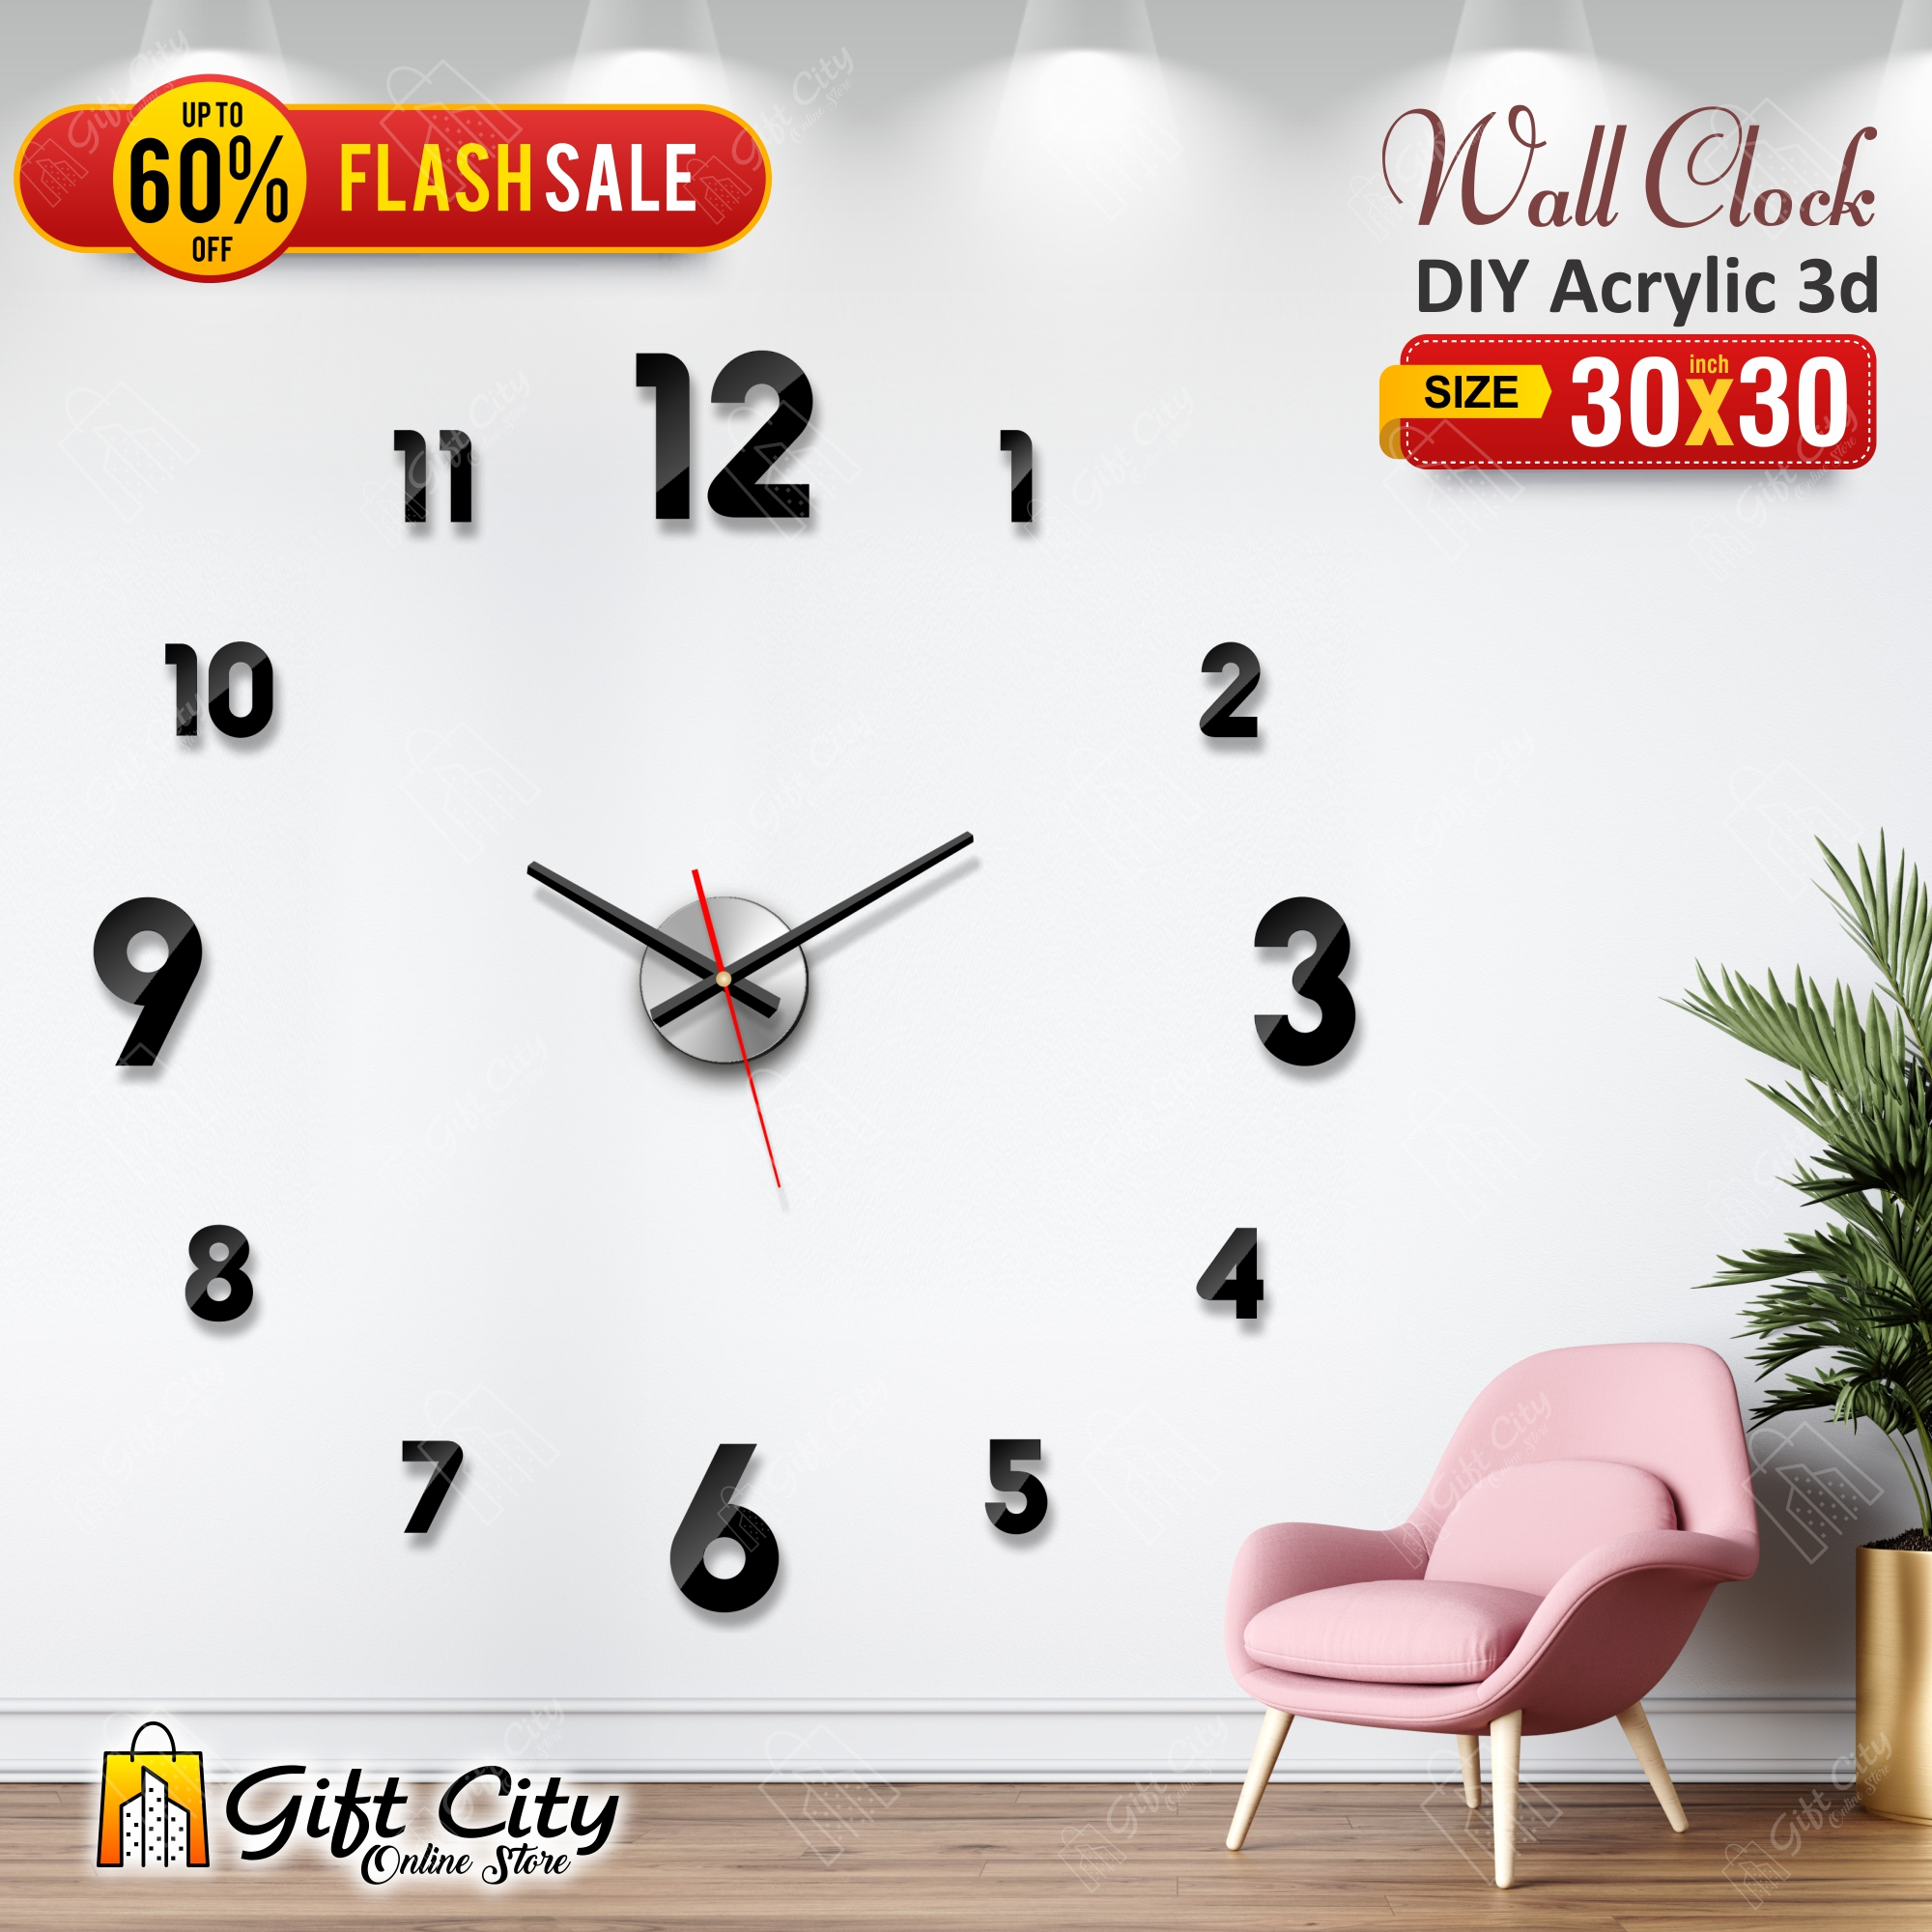 New Acrylic Letters Wall Clock, Creative Wall clock for Home and Offices, 3D Design Self Adhesive - GIFT City